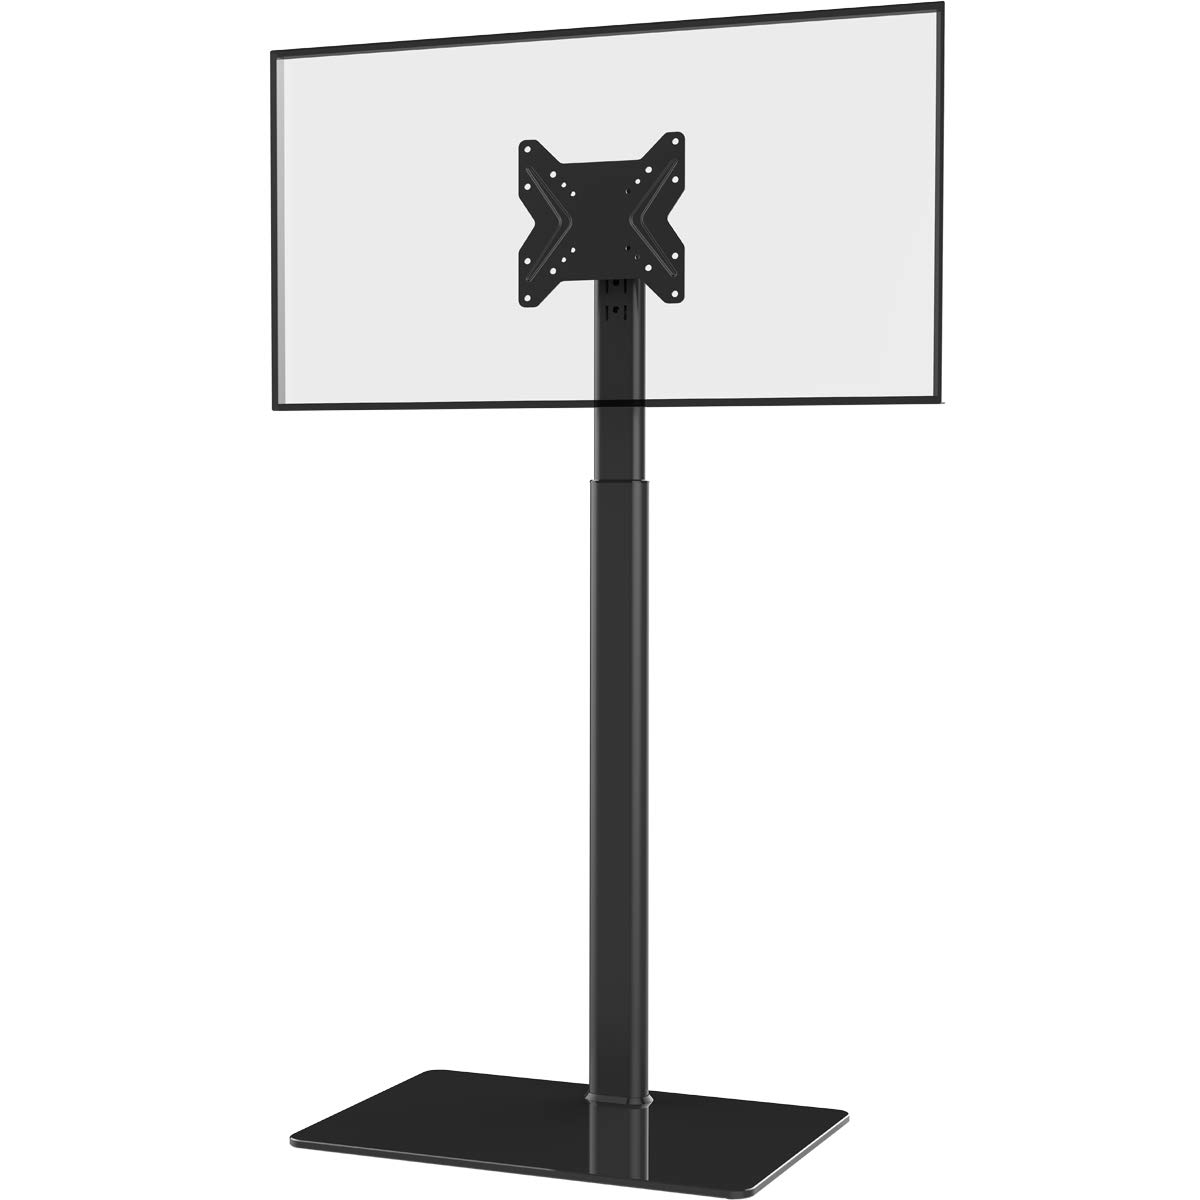 Universal TV Stand with Mount 100 Degree Swivel Height Adjustable and Tilt Function for 19 to 42 inch LCD, LED OLED TVs,HT1001B by Hemudu